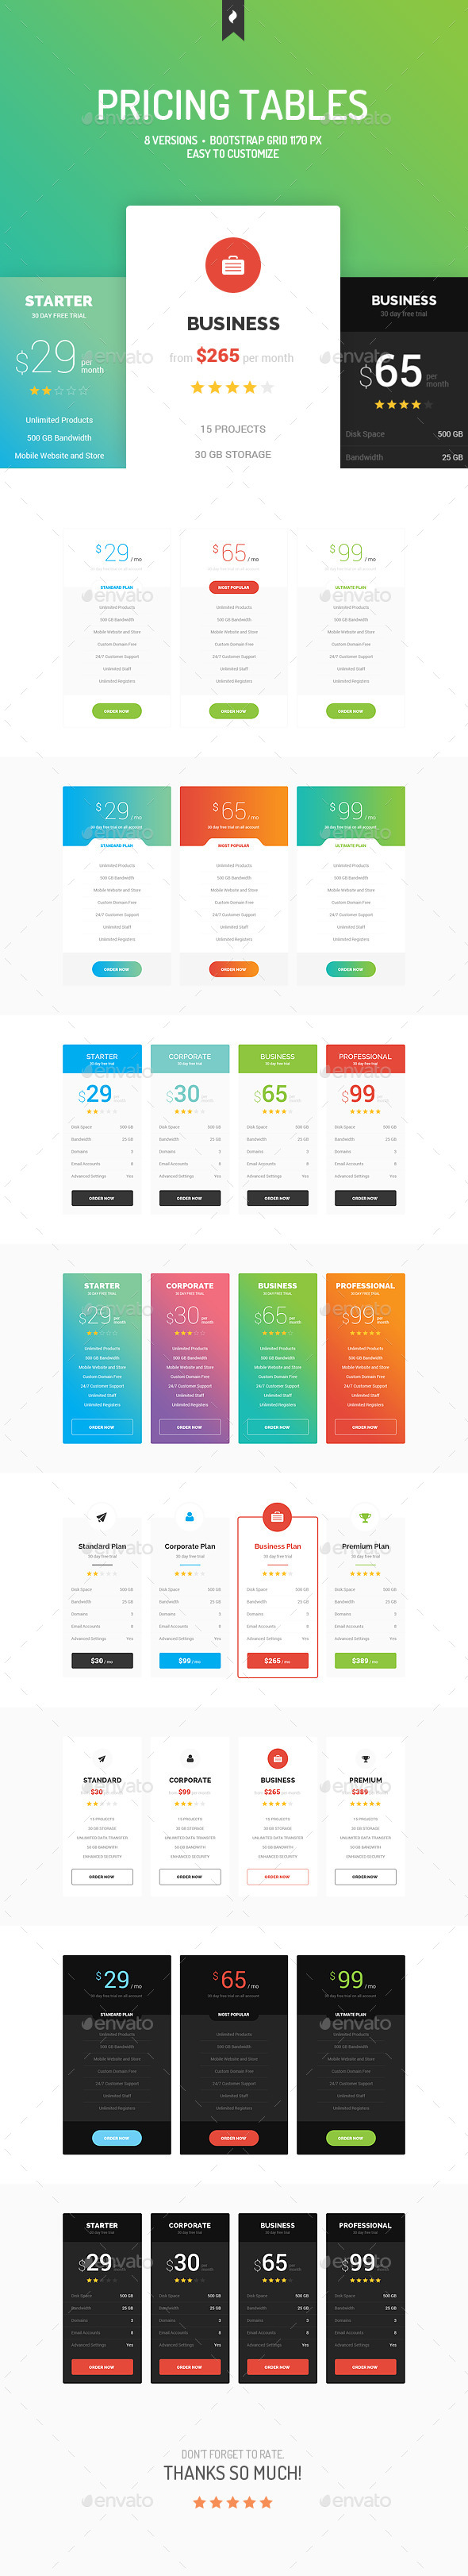 pin by best graphic design on pricing tables templates table